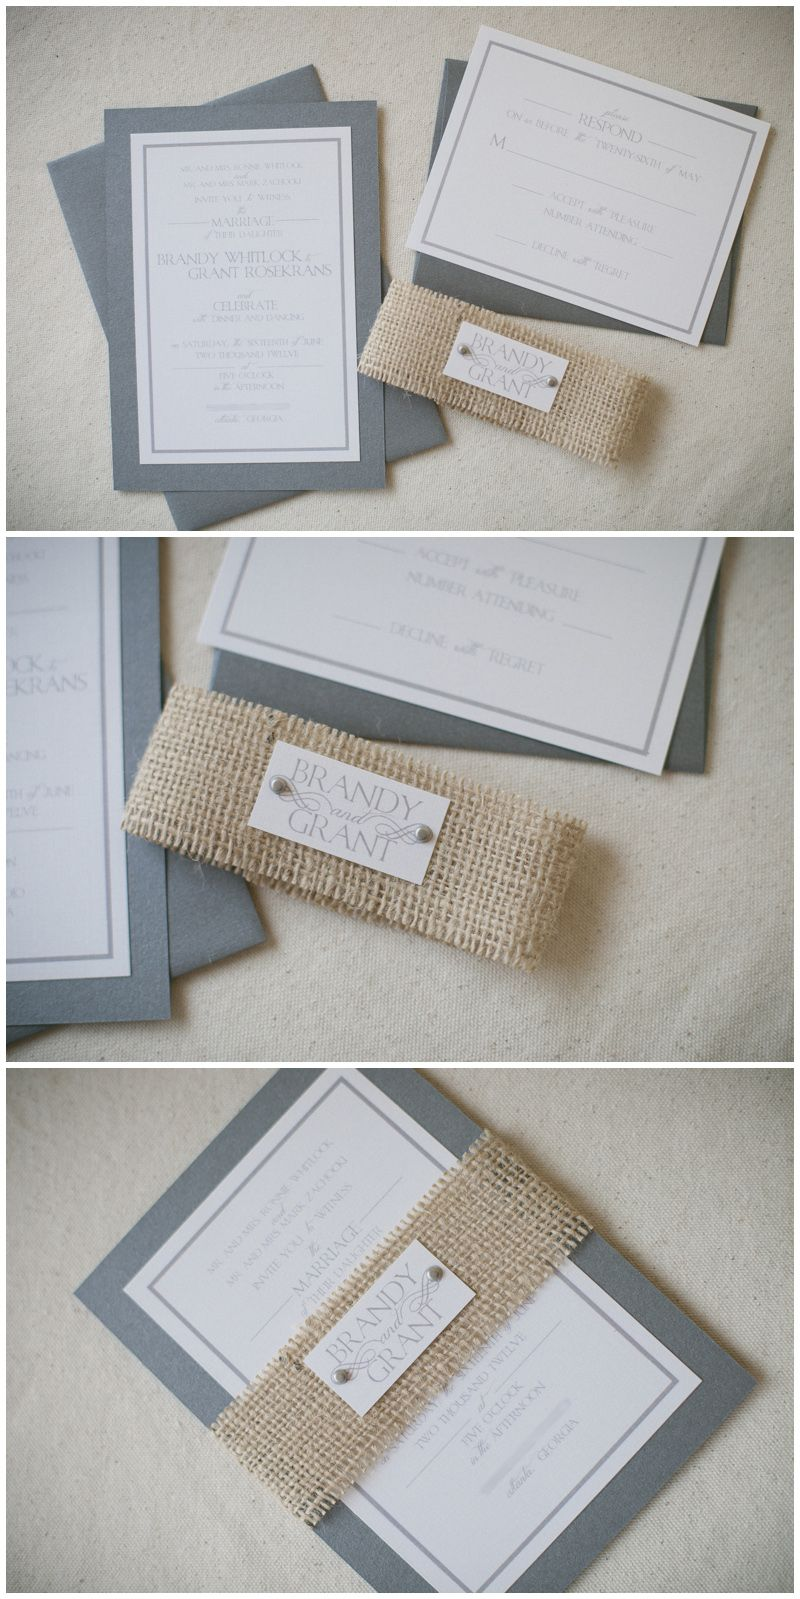 Fabric belly band for wedding invite diy wedding pinterest